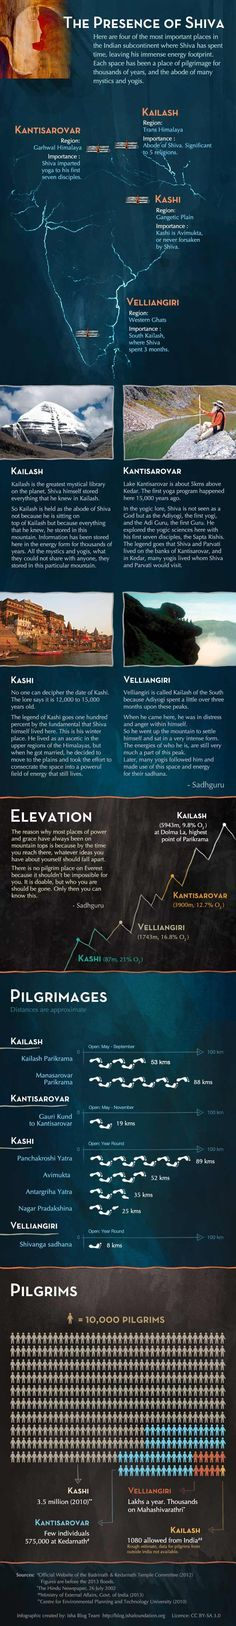 The Presence of Shiva Infographic - On the Trail of the First Yogi